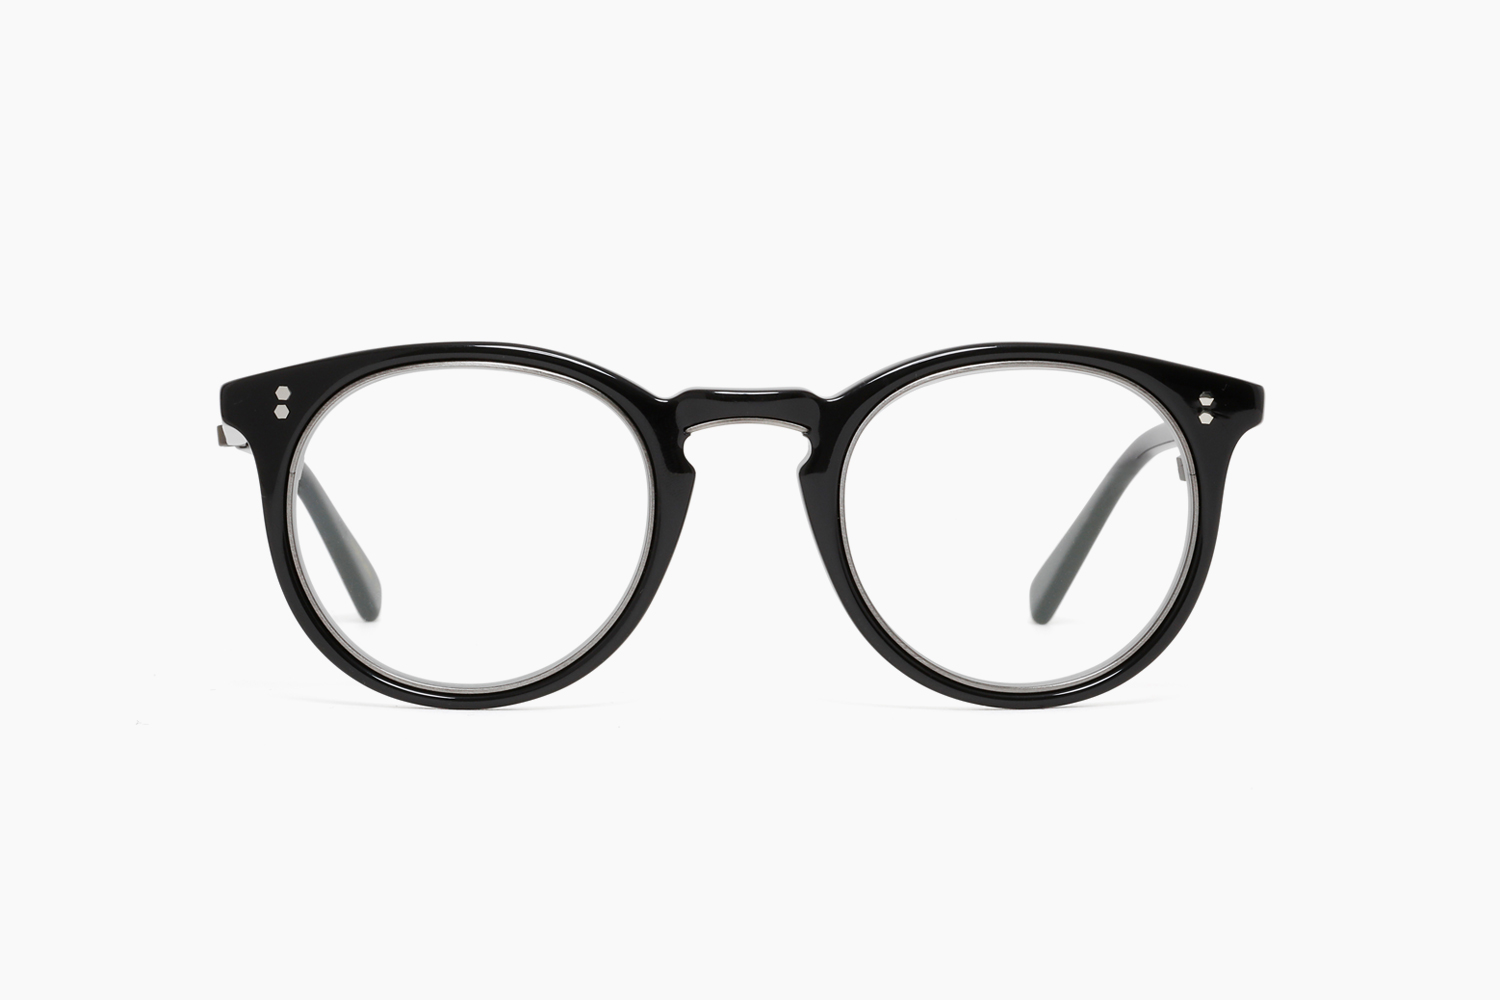 CROSBY C – BLACK|Mr. Leight